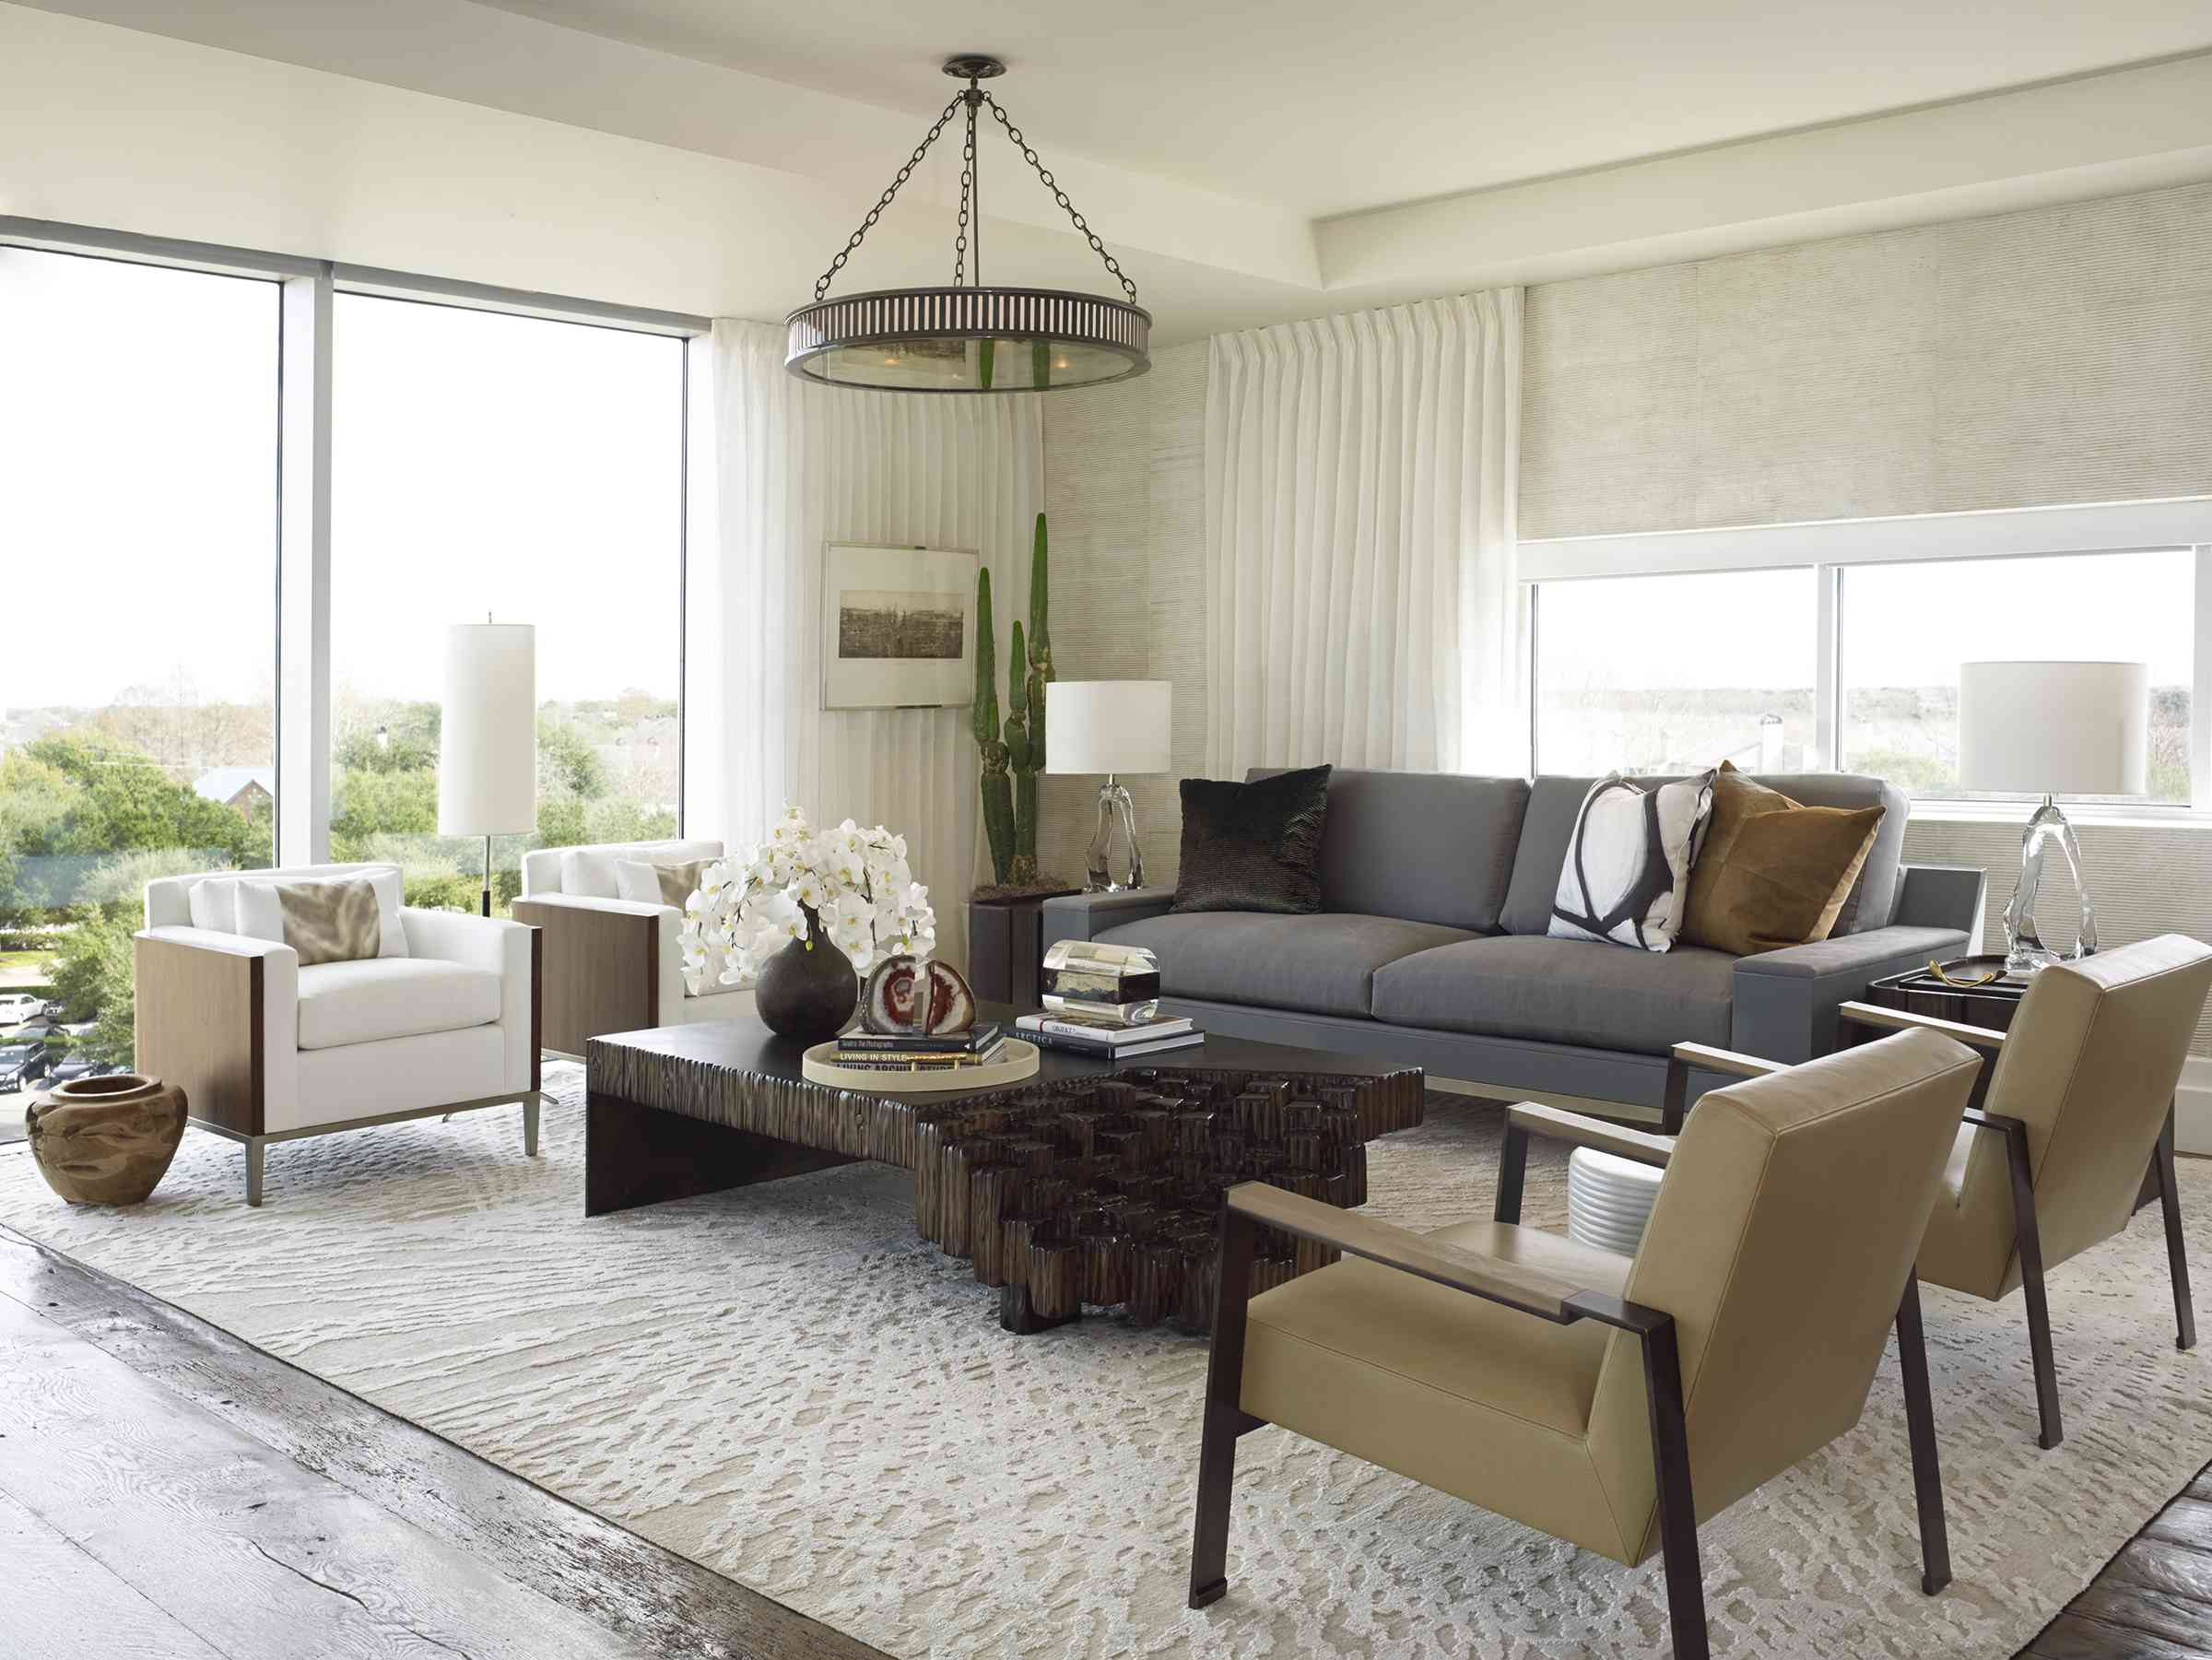 Living room with functional furniture.